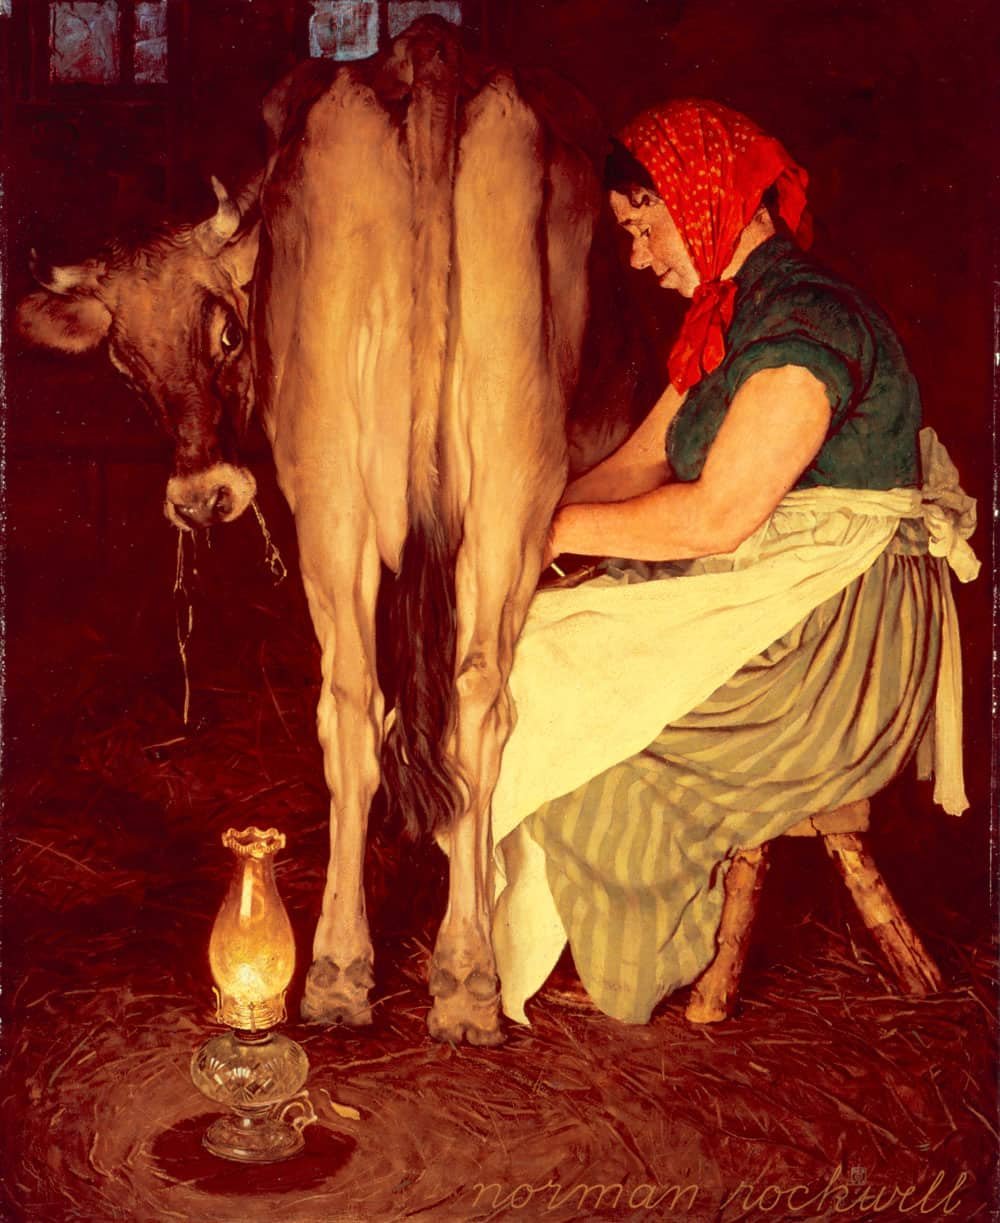 Normal Rockwell painting of Mrs. O'Leary milking her cow in her barn